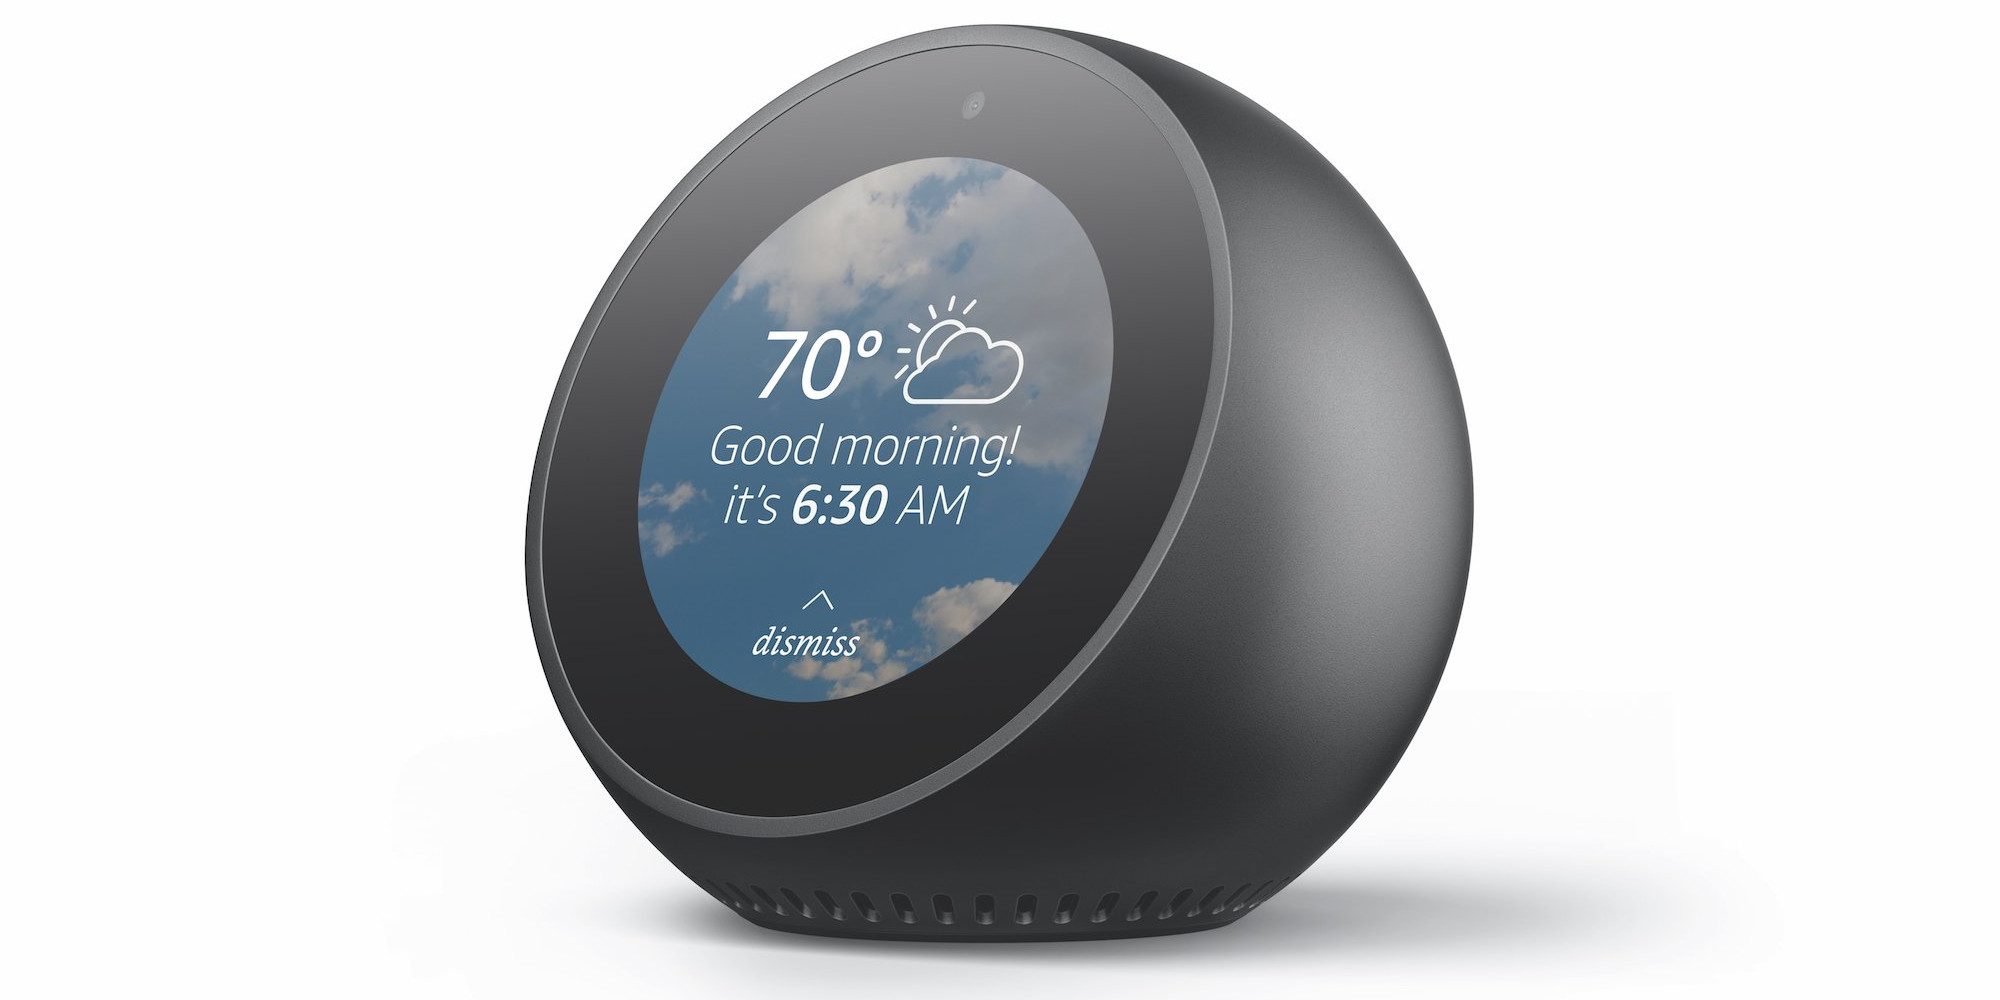 Does Alphabet Inc (GOOGL) Have An Echo Show Killer In the Works?